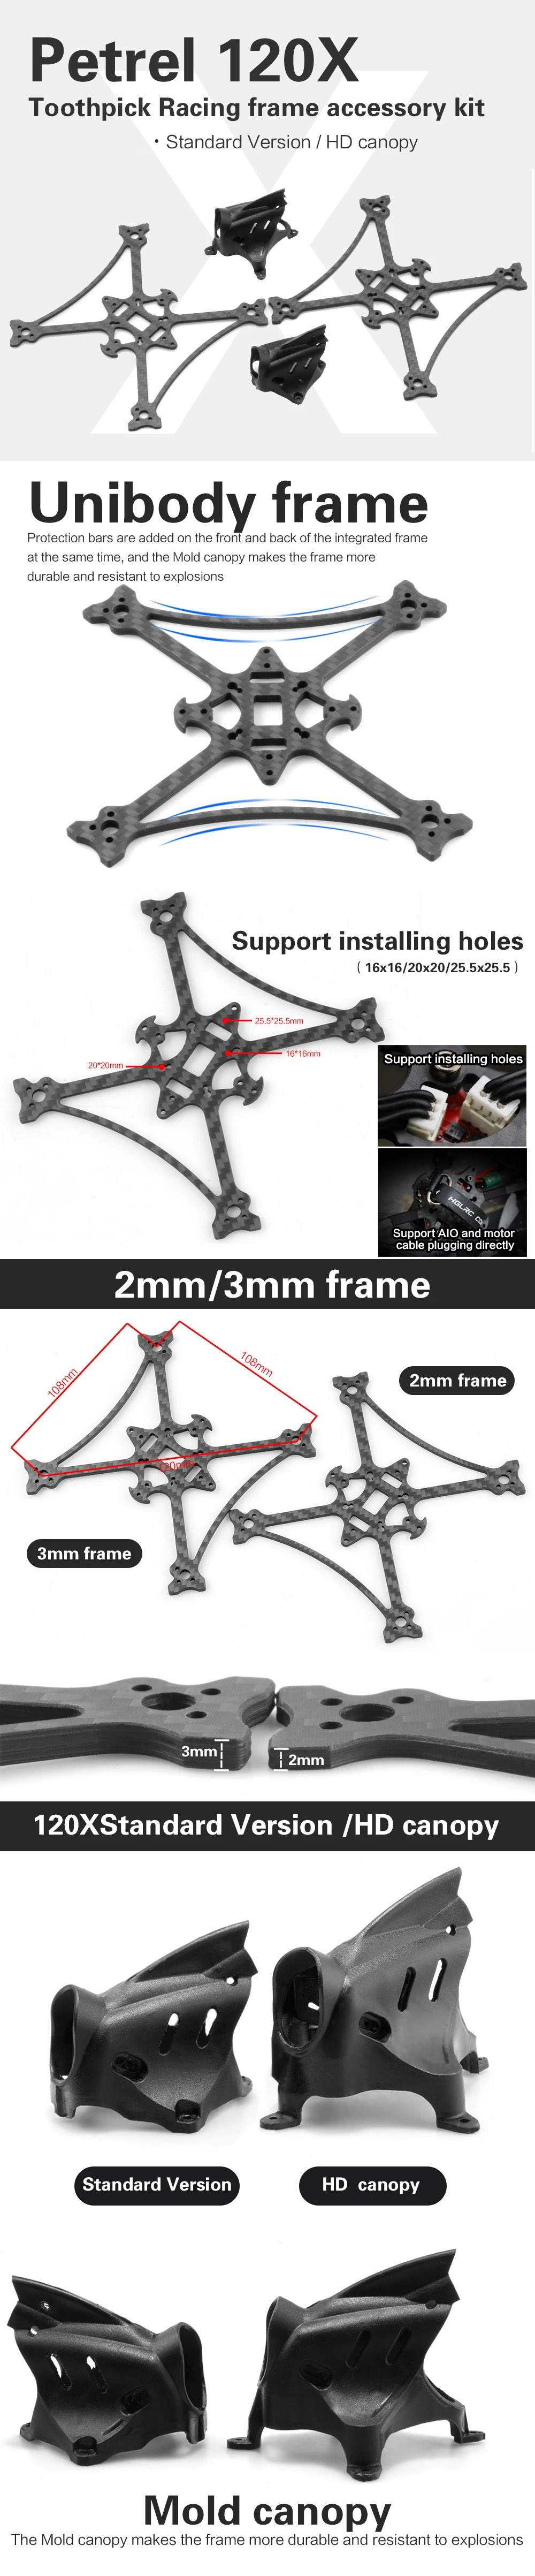 HGLRC Petrel 120X 3 Inches Toothpick FPV Racing Frame 2mm Bottom Plate Frame Kit - Black